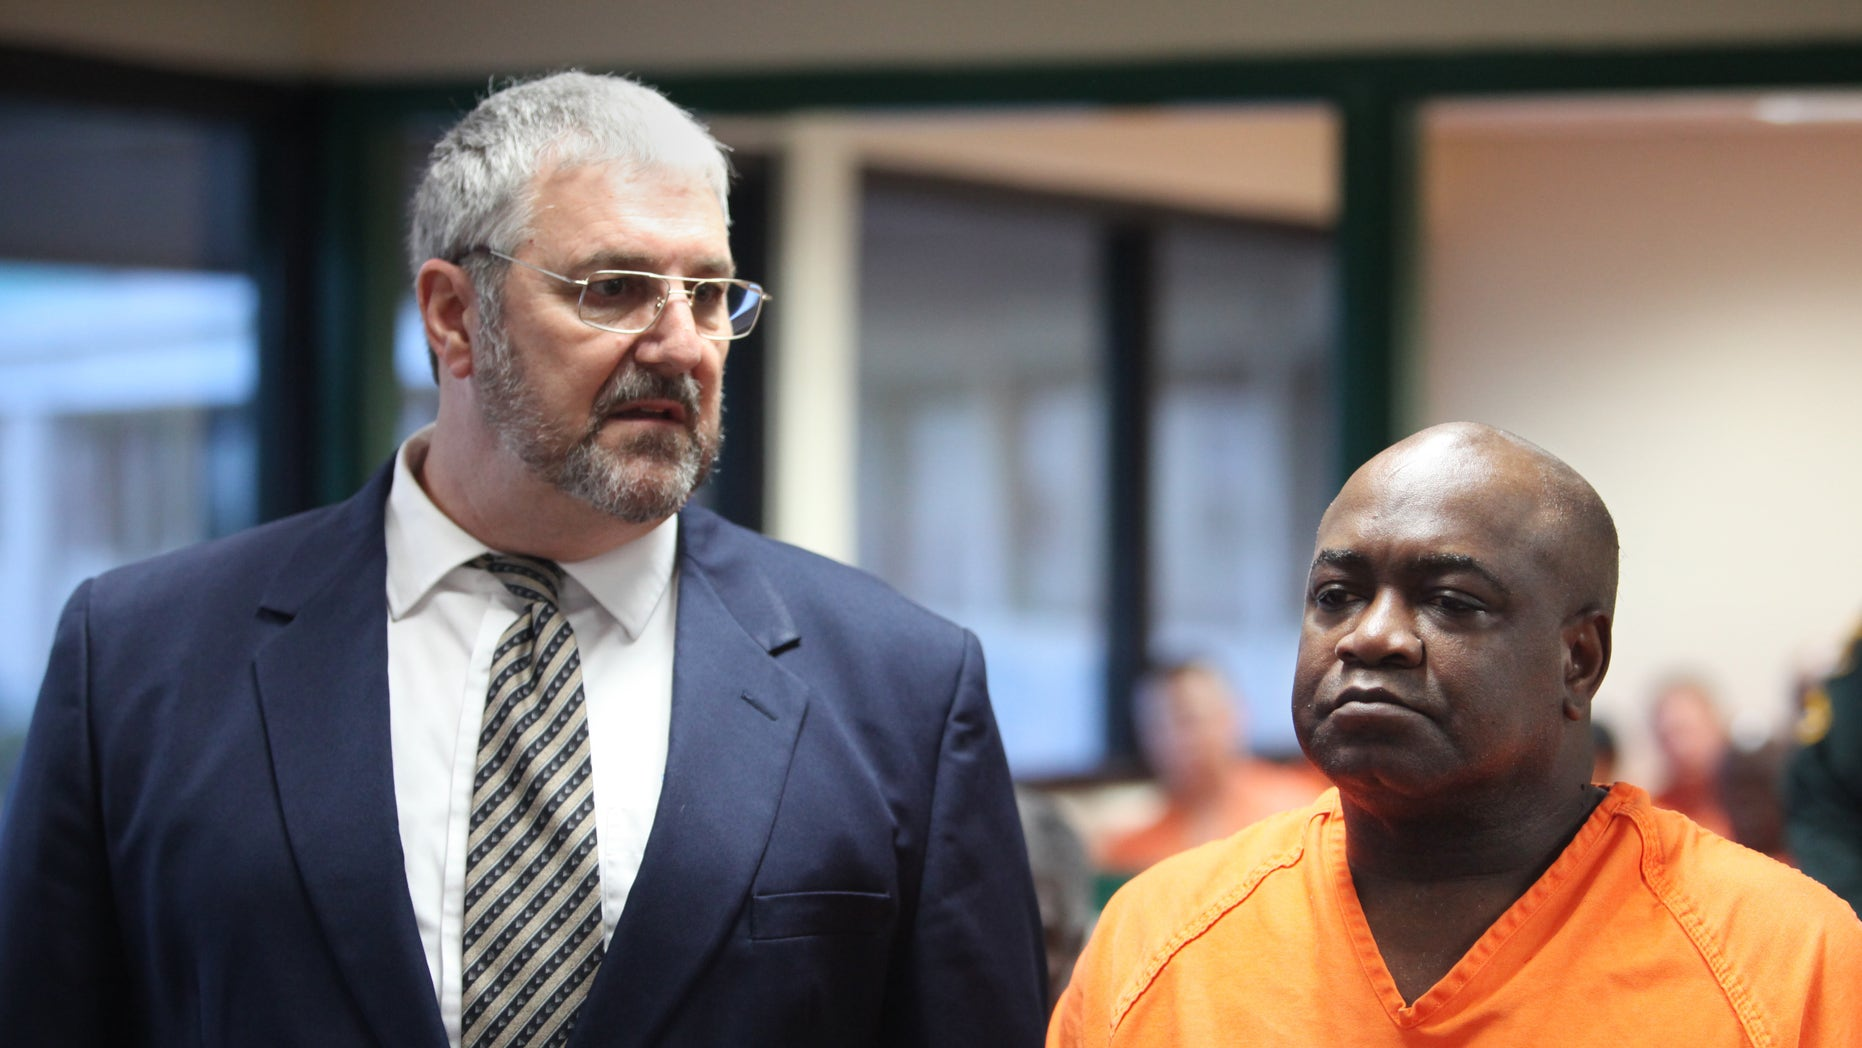 September 19: Assistant Public Defender Robert Trogolo, left, stands next to Jeremiah Fogle, 57, during Fogle's first appearance in front of County Judge Susan Barber Flood, in Bartow, Florida. Fogle has been charged with first-degree murder of his wife Theresa Fogle, 56, and three counts of attempted murder and shooting into an occupied dwelling.